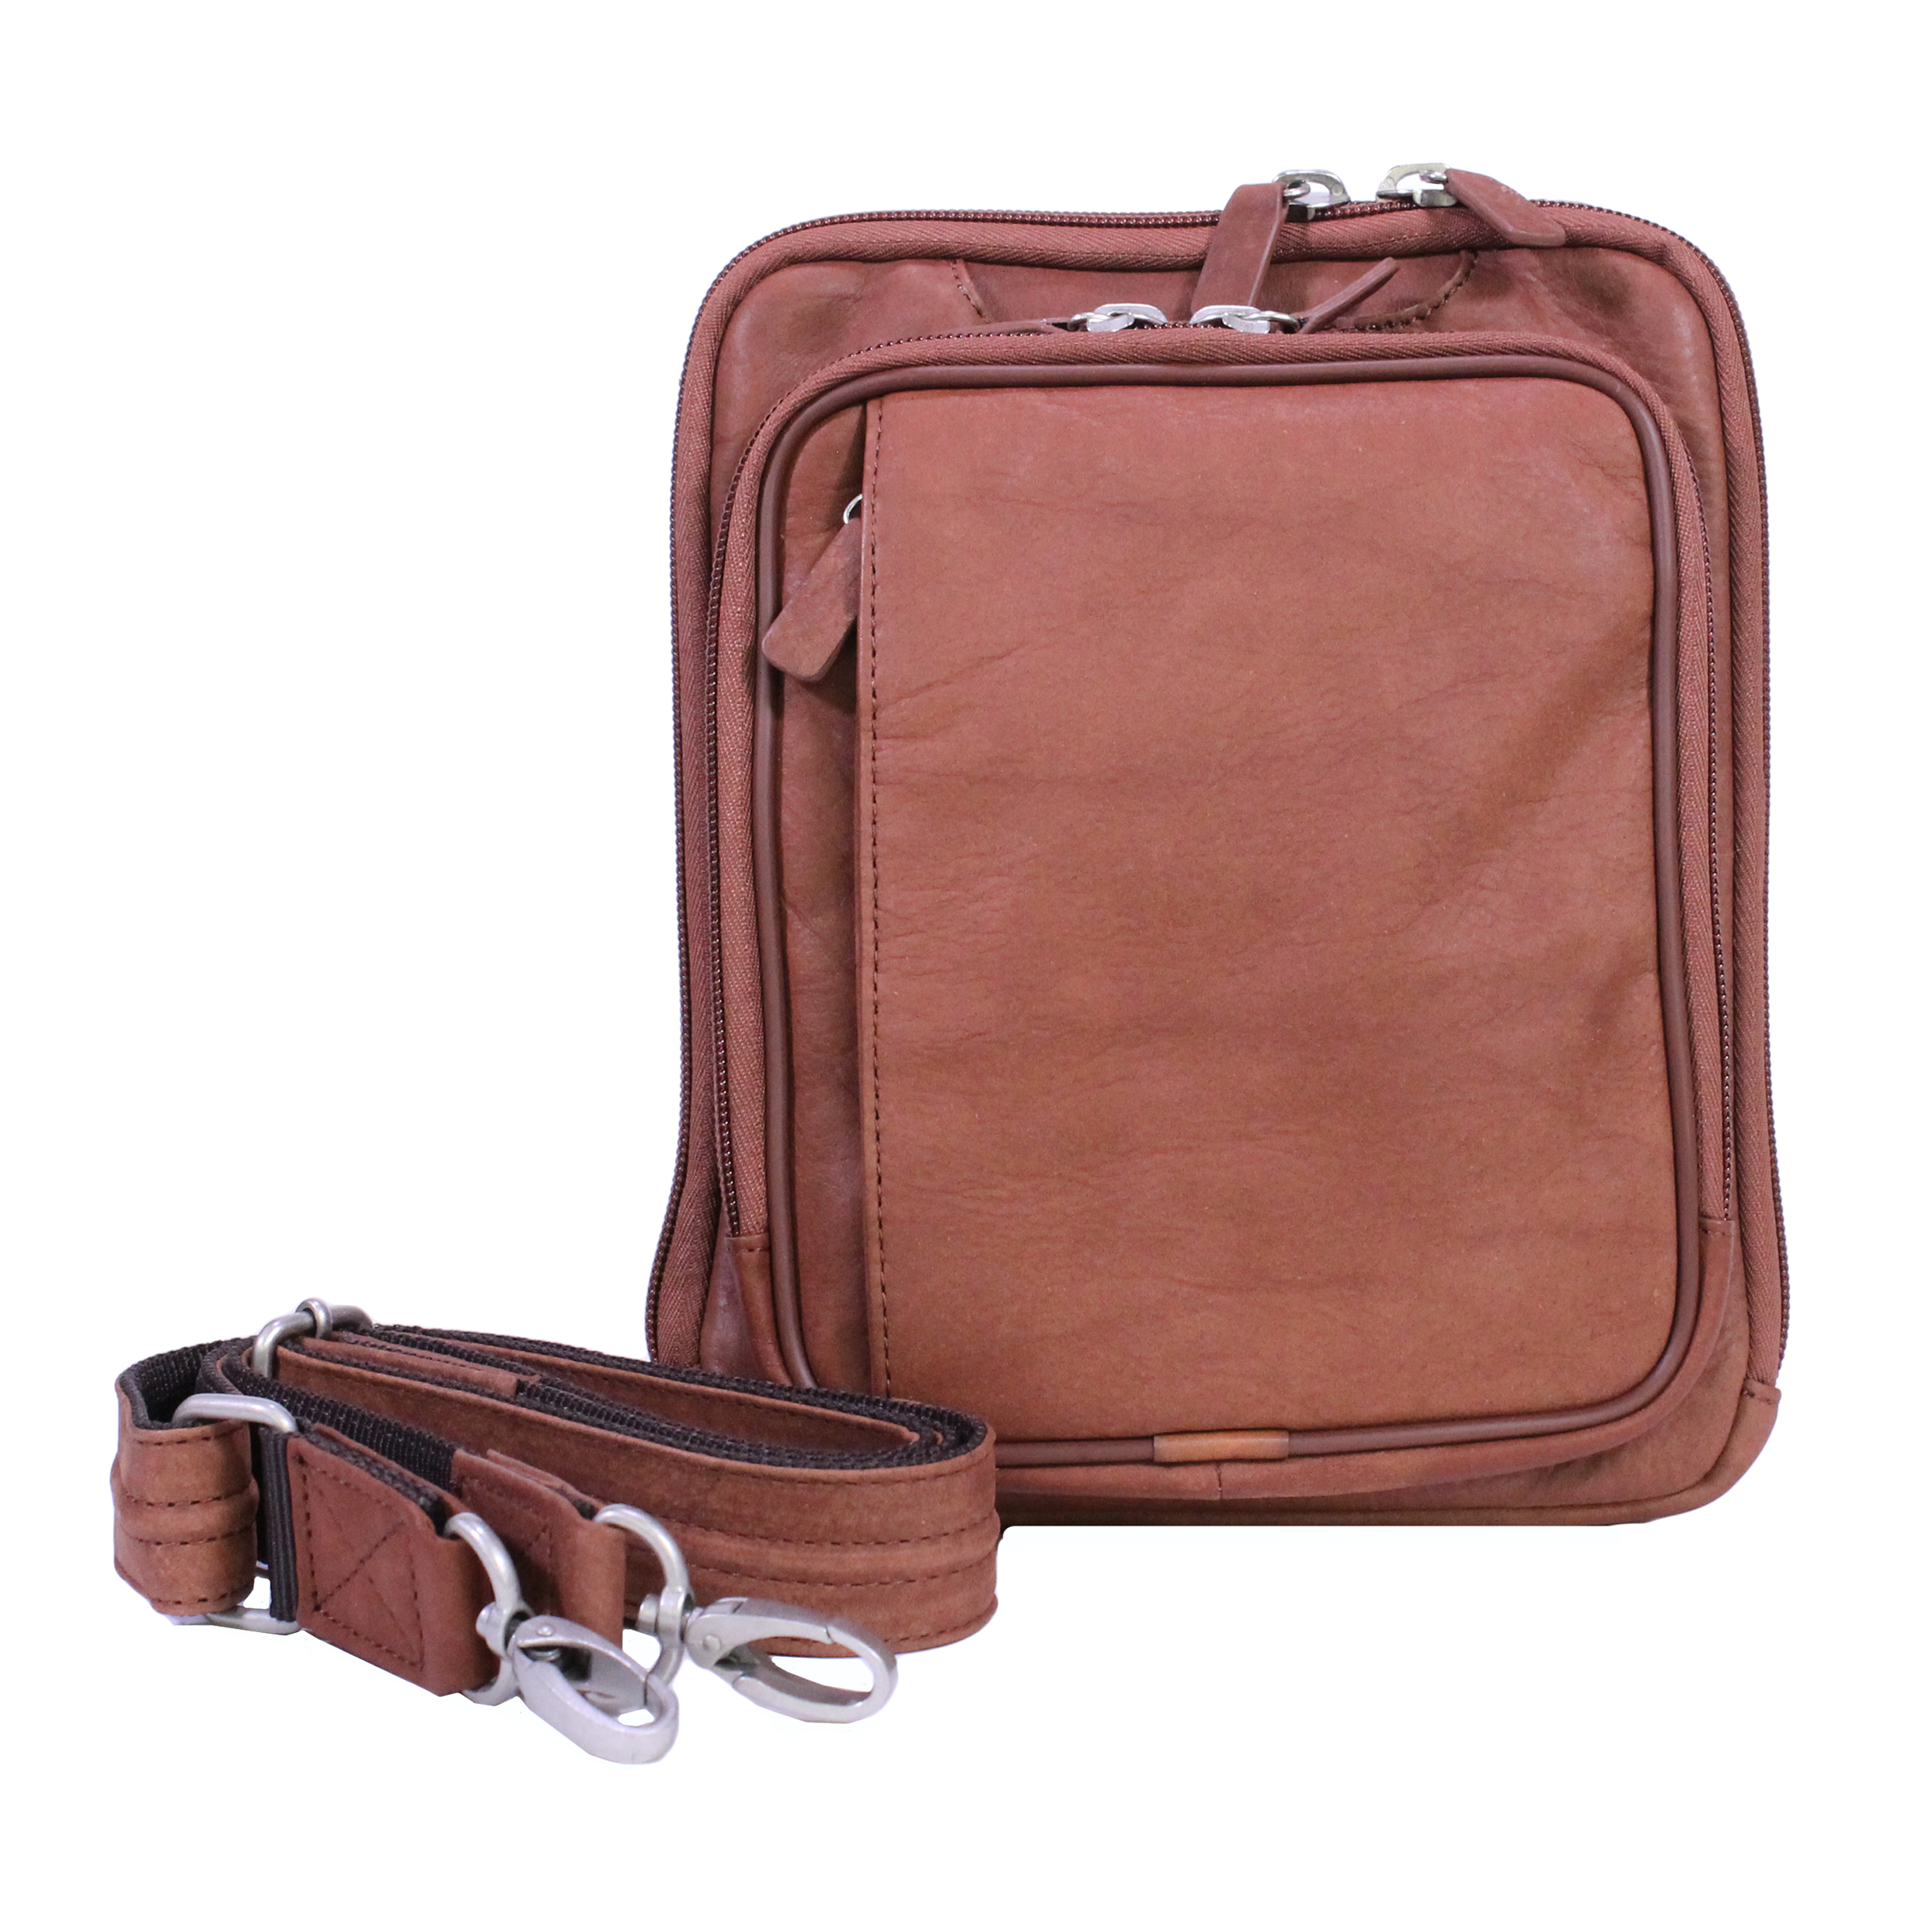 Gun Toten Mamas U.S. Bison Leather Raven Cross Body Bag, Rust GTMBIS-99/RUST